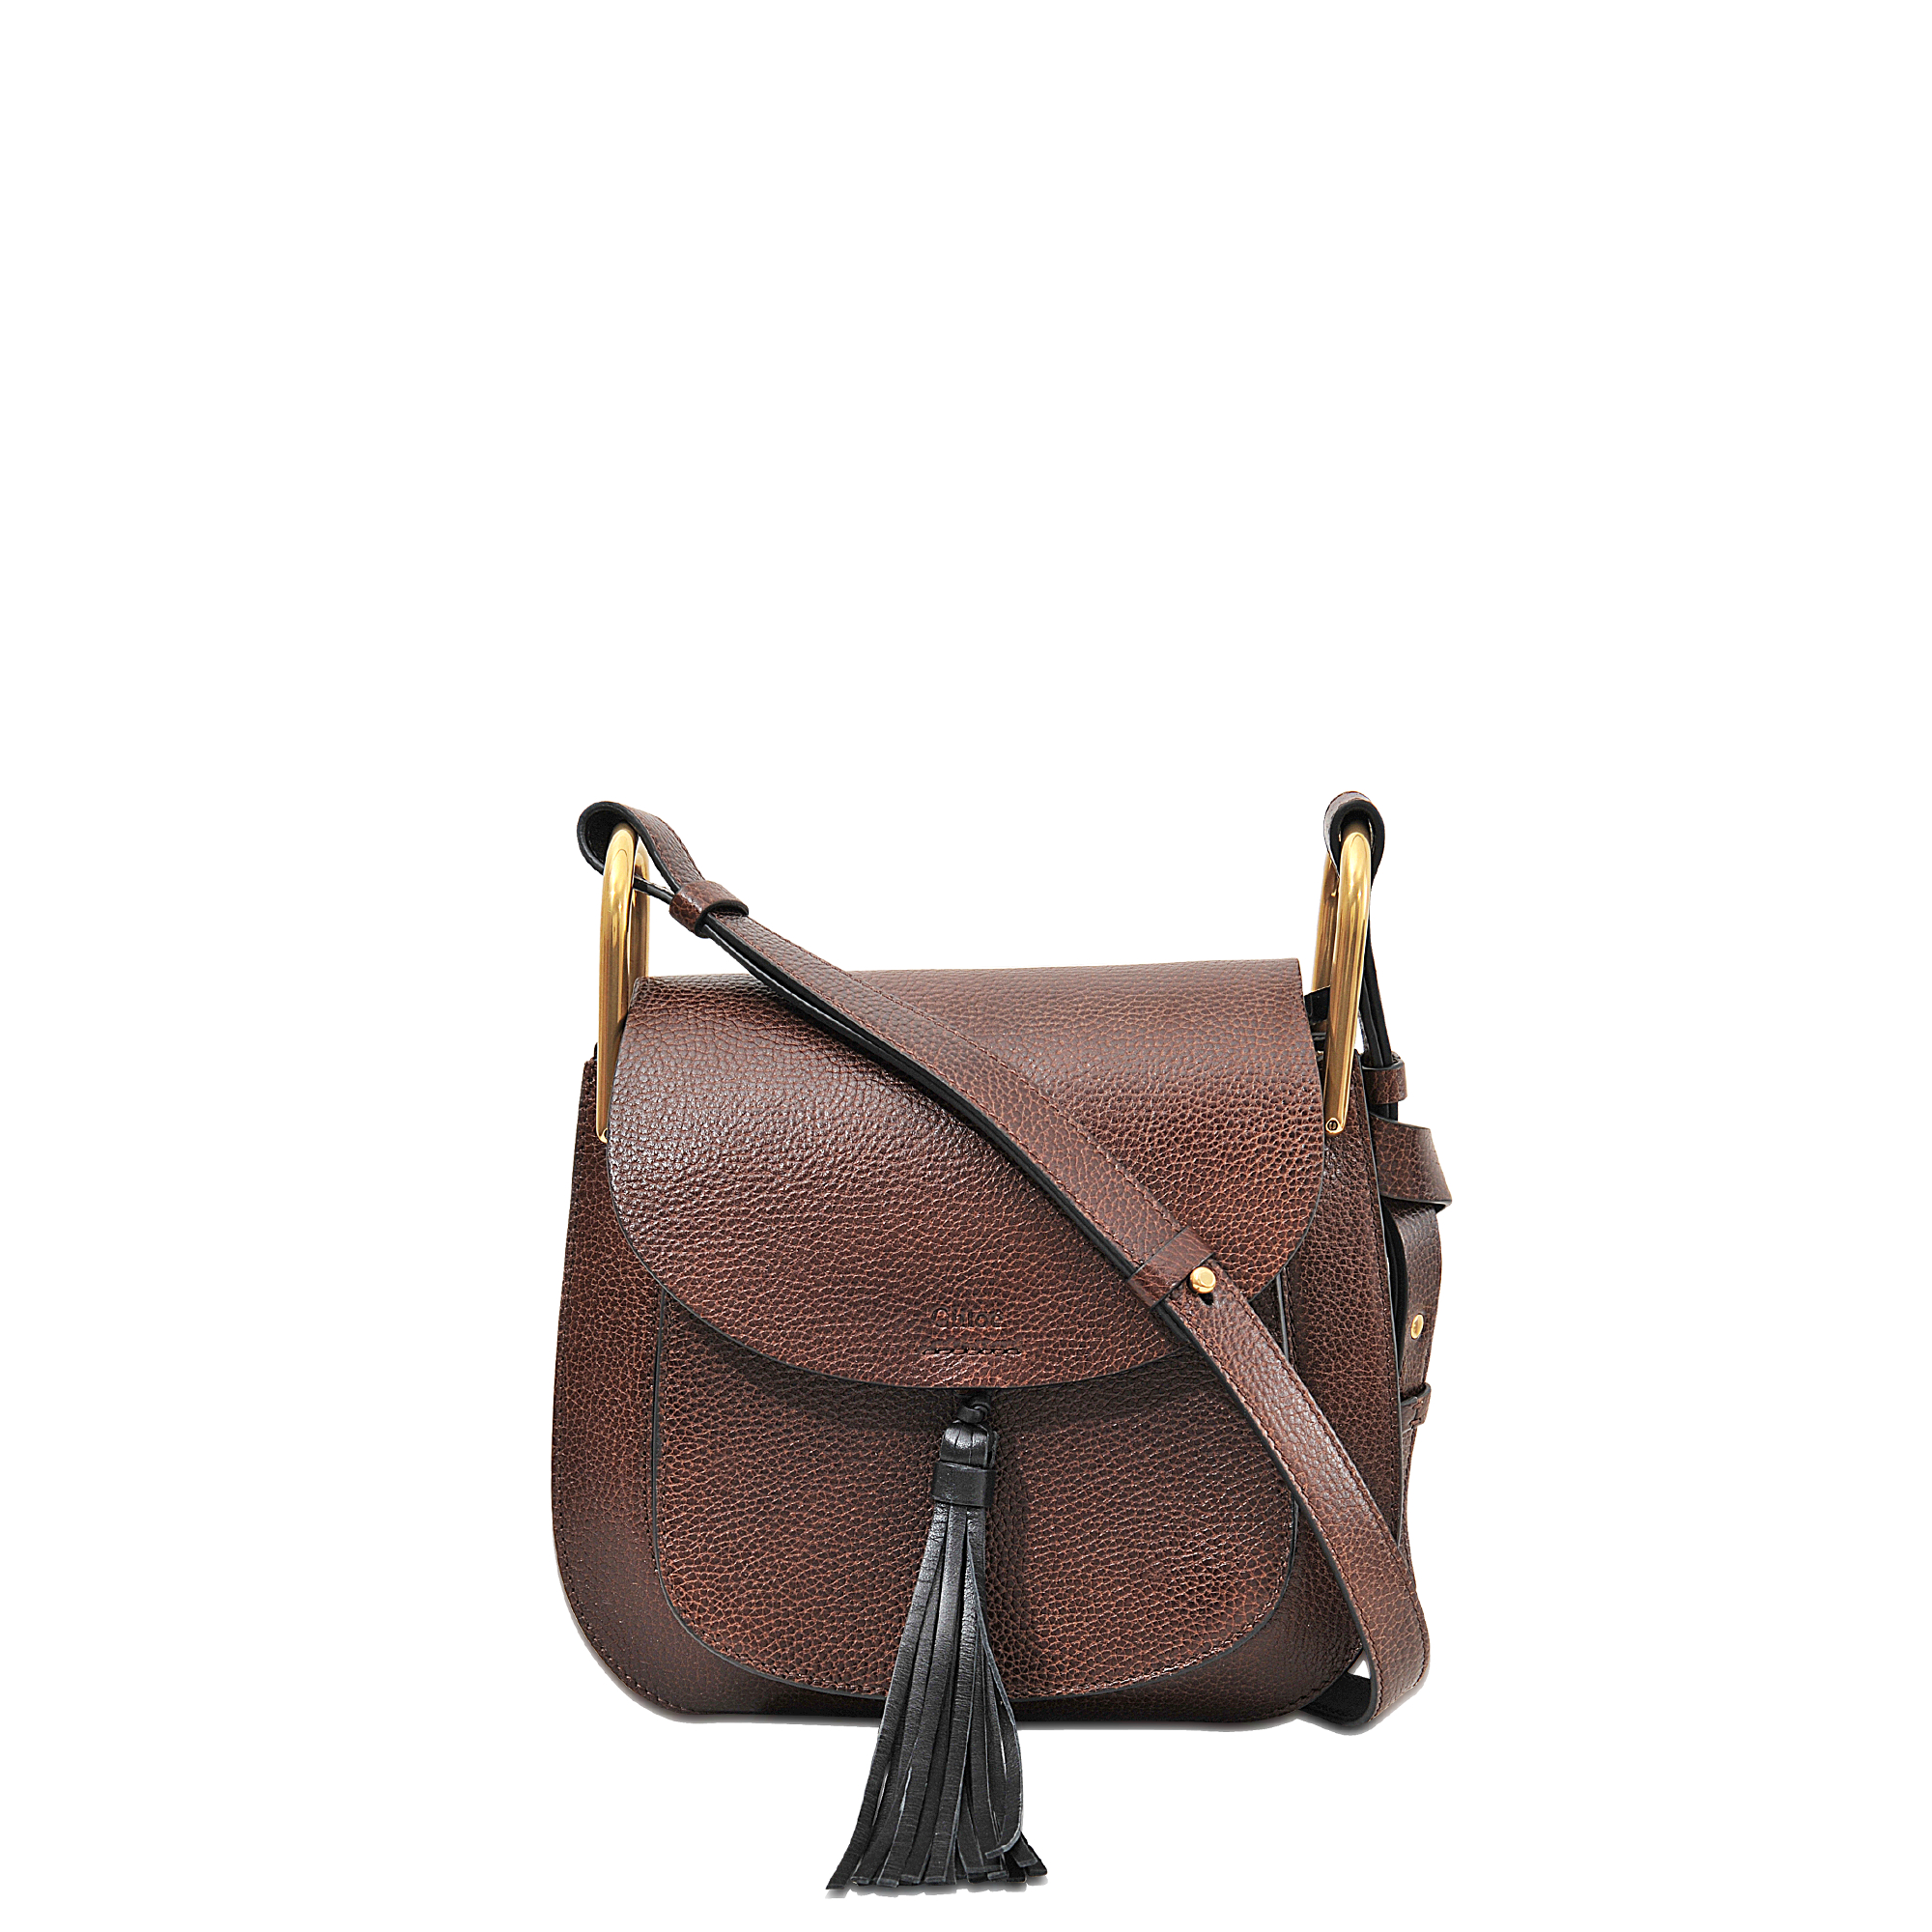 Chlo�� Hudson Small Shoulder Bag in Brown | Lyst